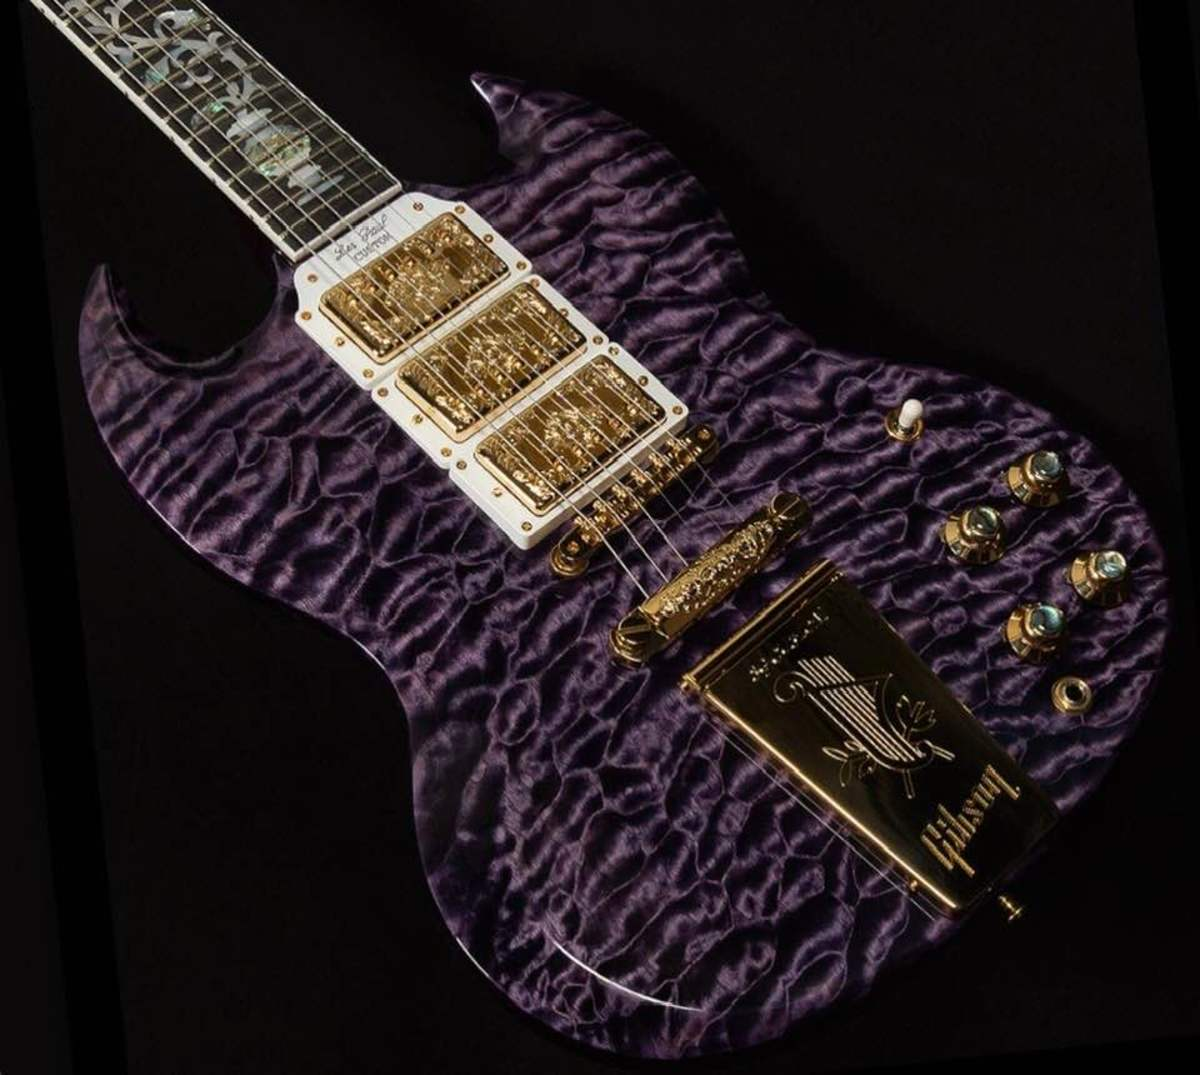 extraordinary-or-fancier-than-usual-new-gibson-sg-guitars